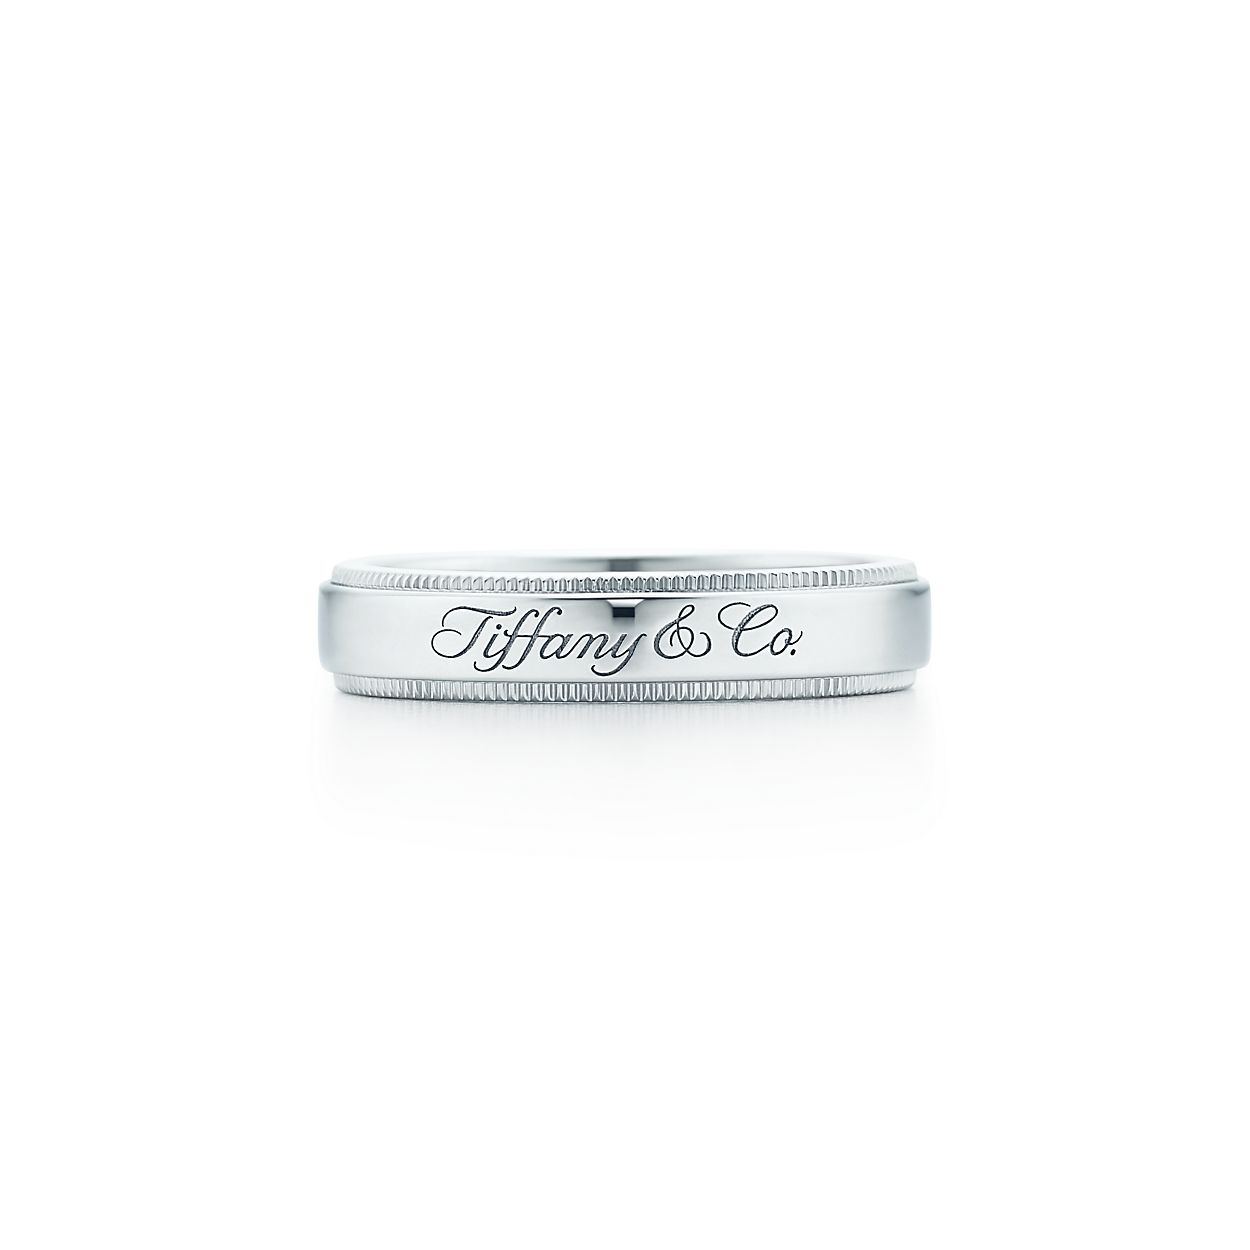 rings ecombrowsel platinum milgrain image media ed com m is wedding jewelry ring sv co band usm bands s classic tiffany op